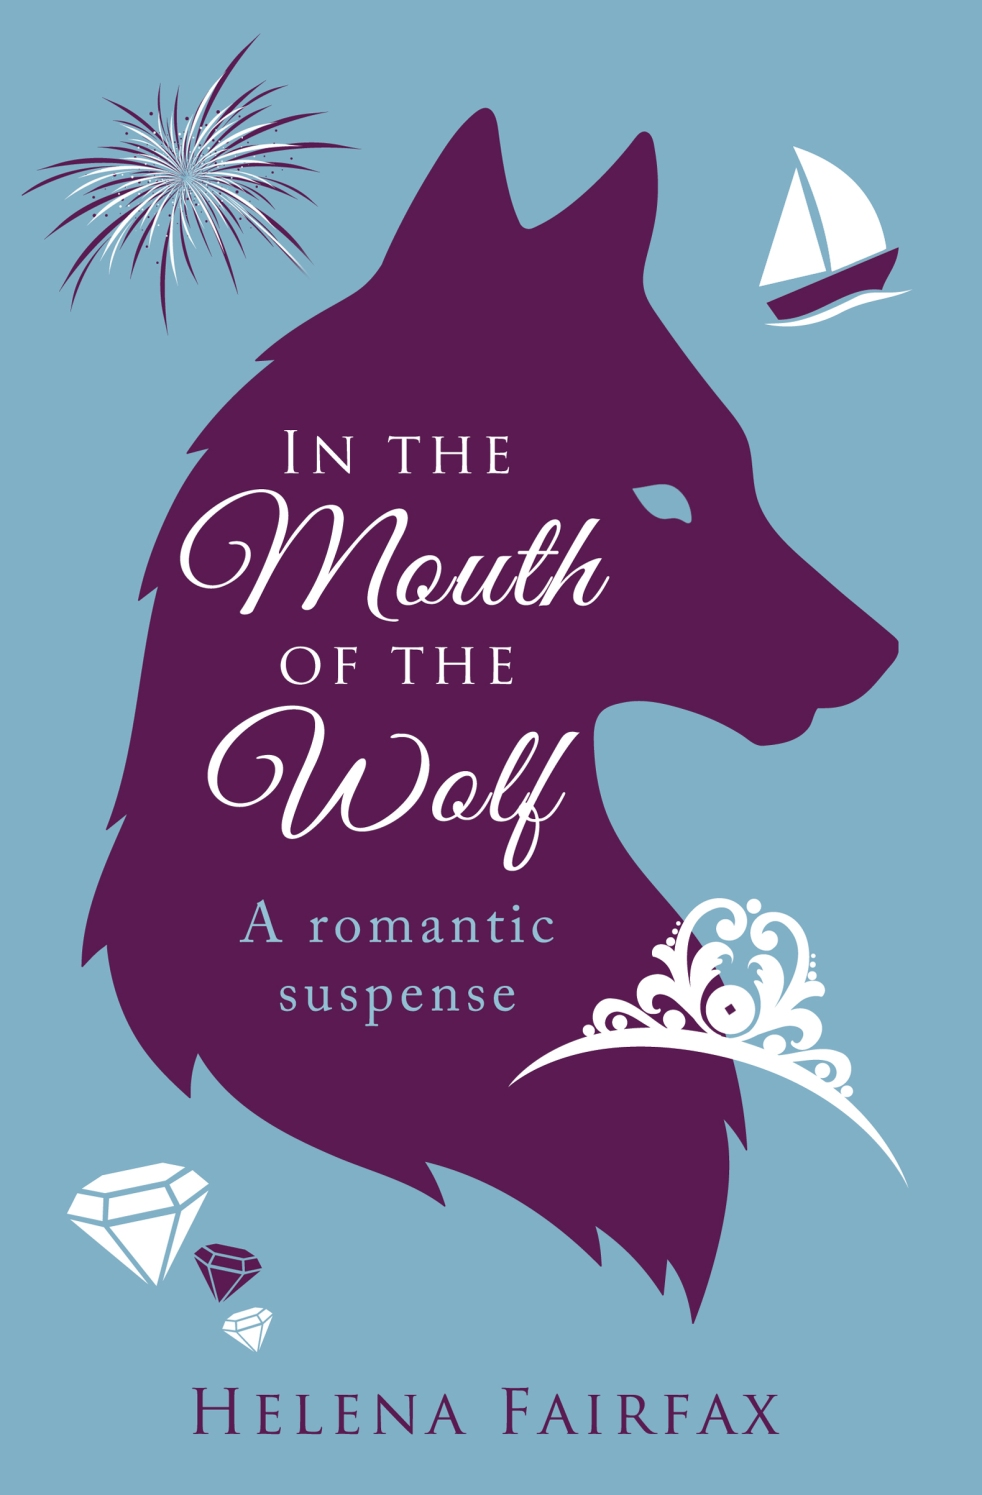 helena fairfax, in the mouth of the wolf, freelance editor